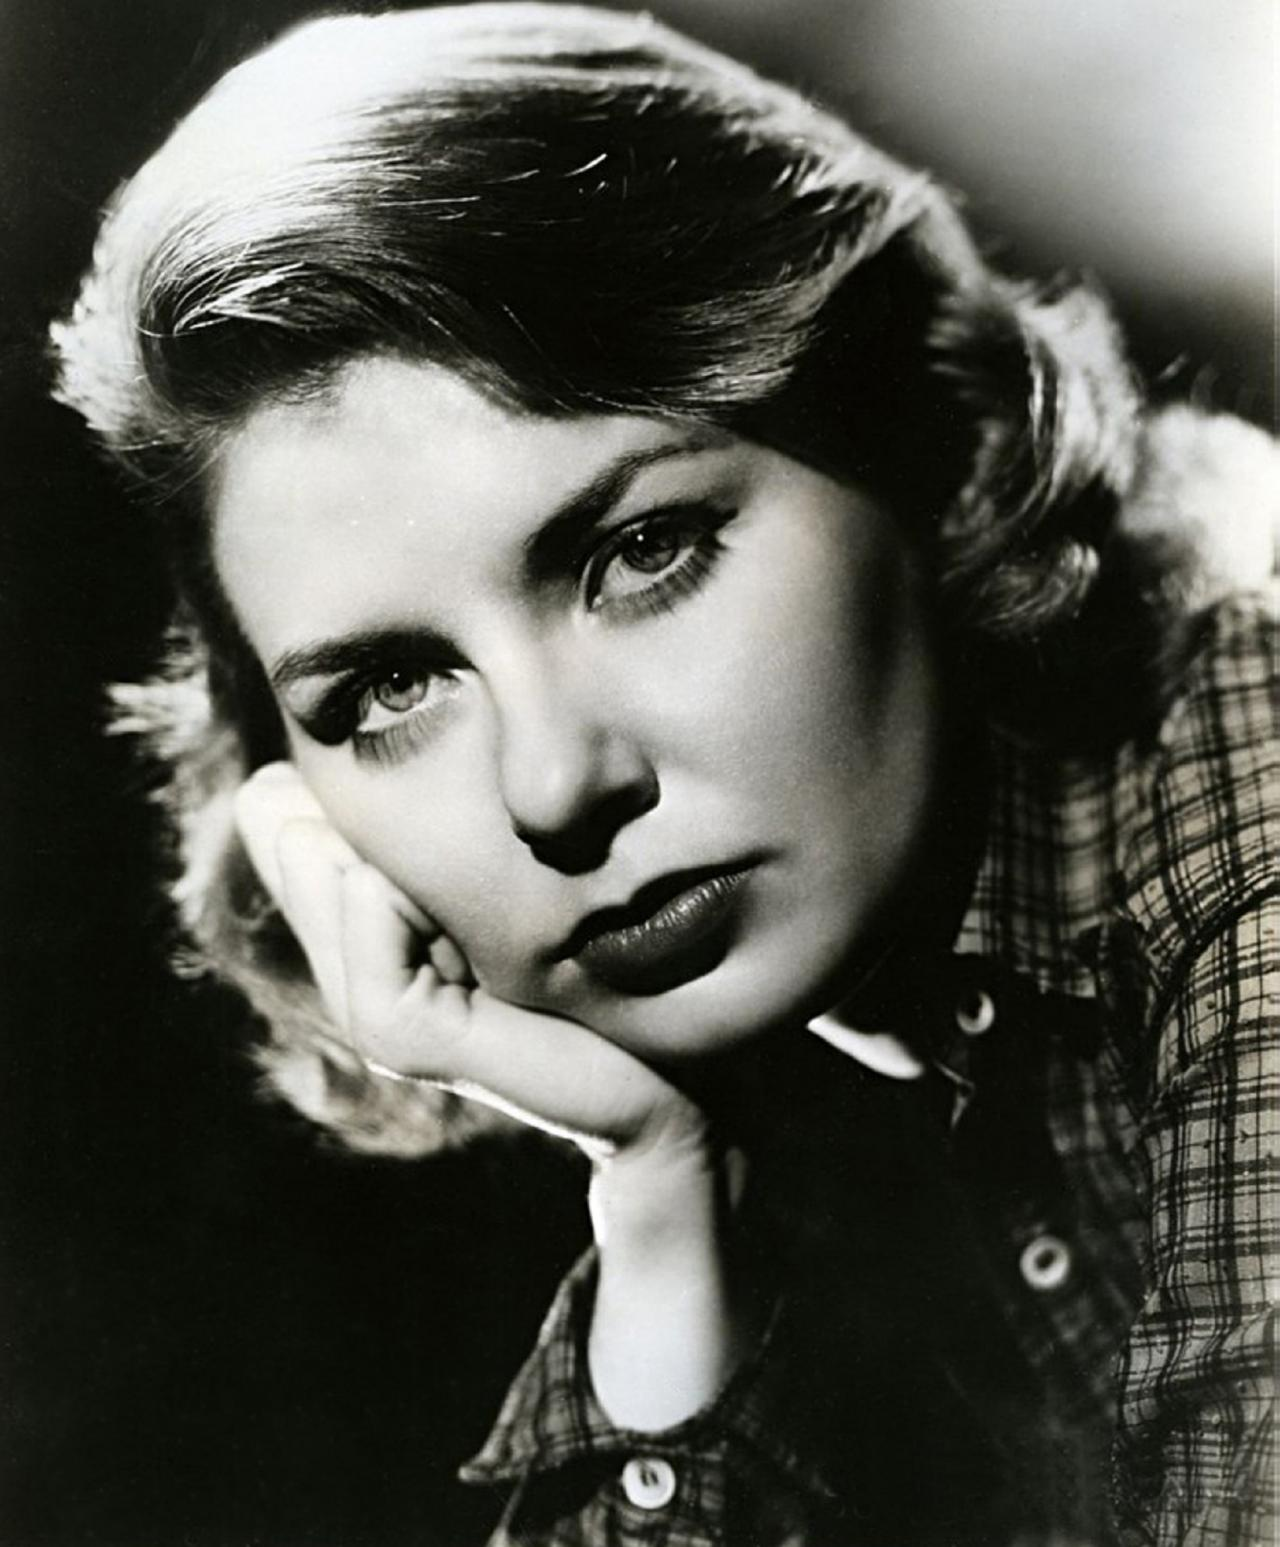 Joanne Woodward, television, film, famous, actor, HQ Photo